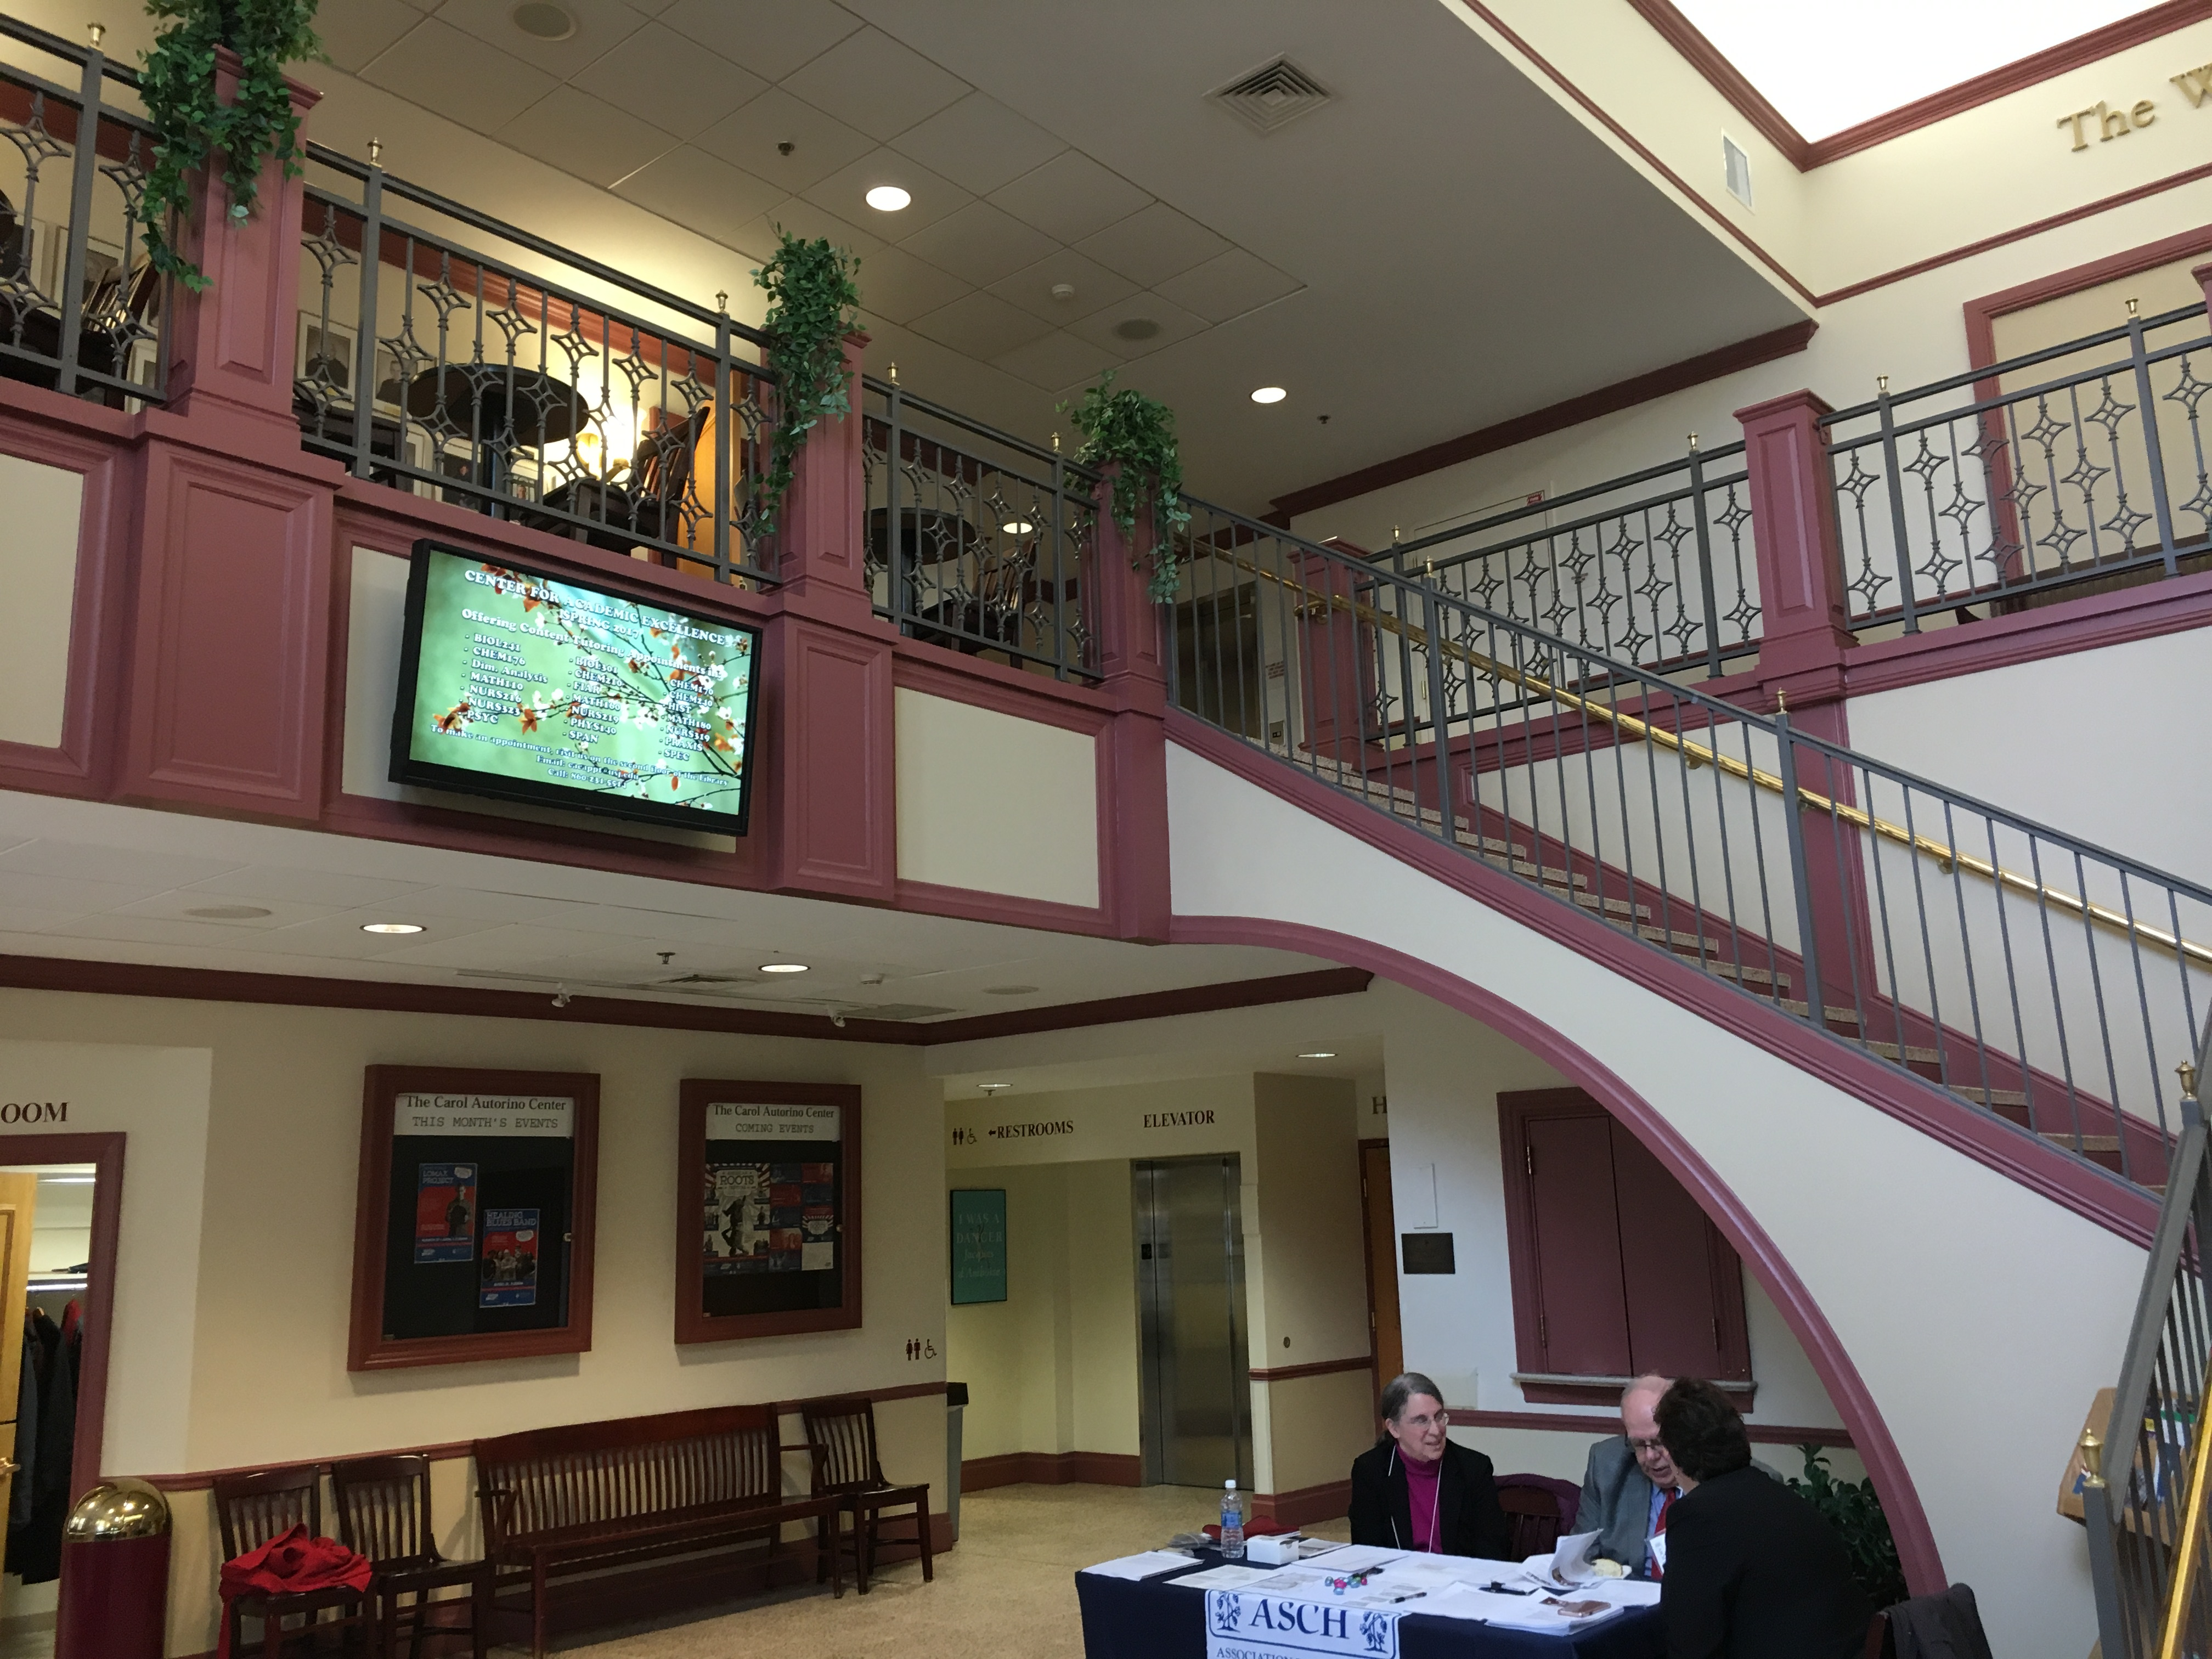 the Coleman Lobby at USJ